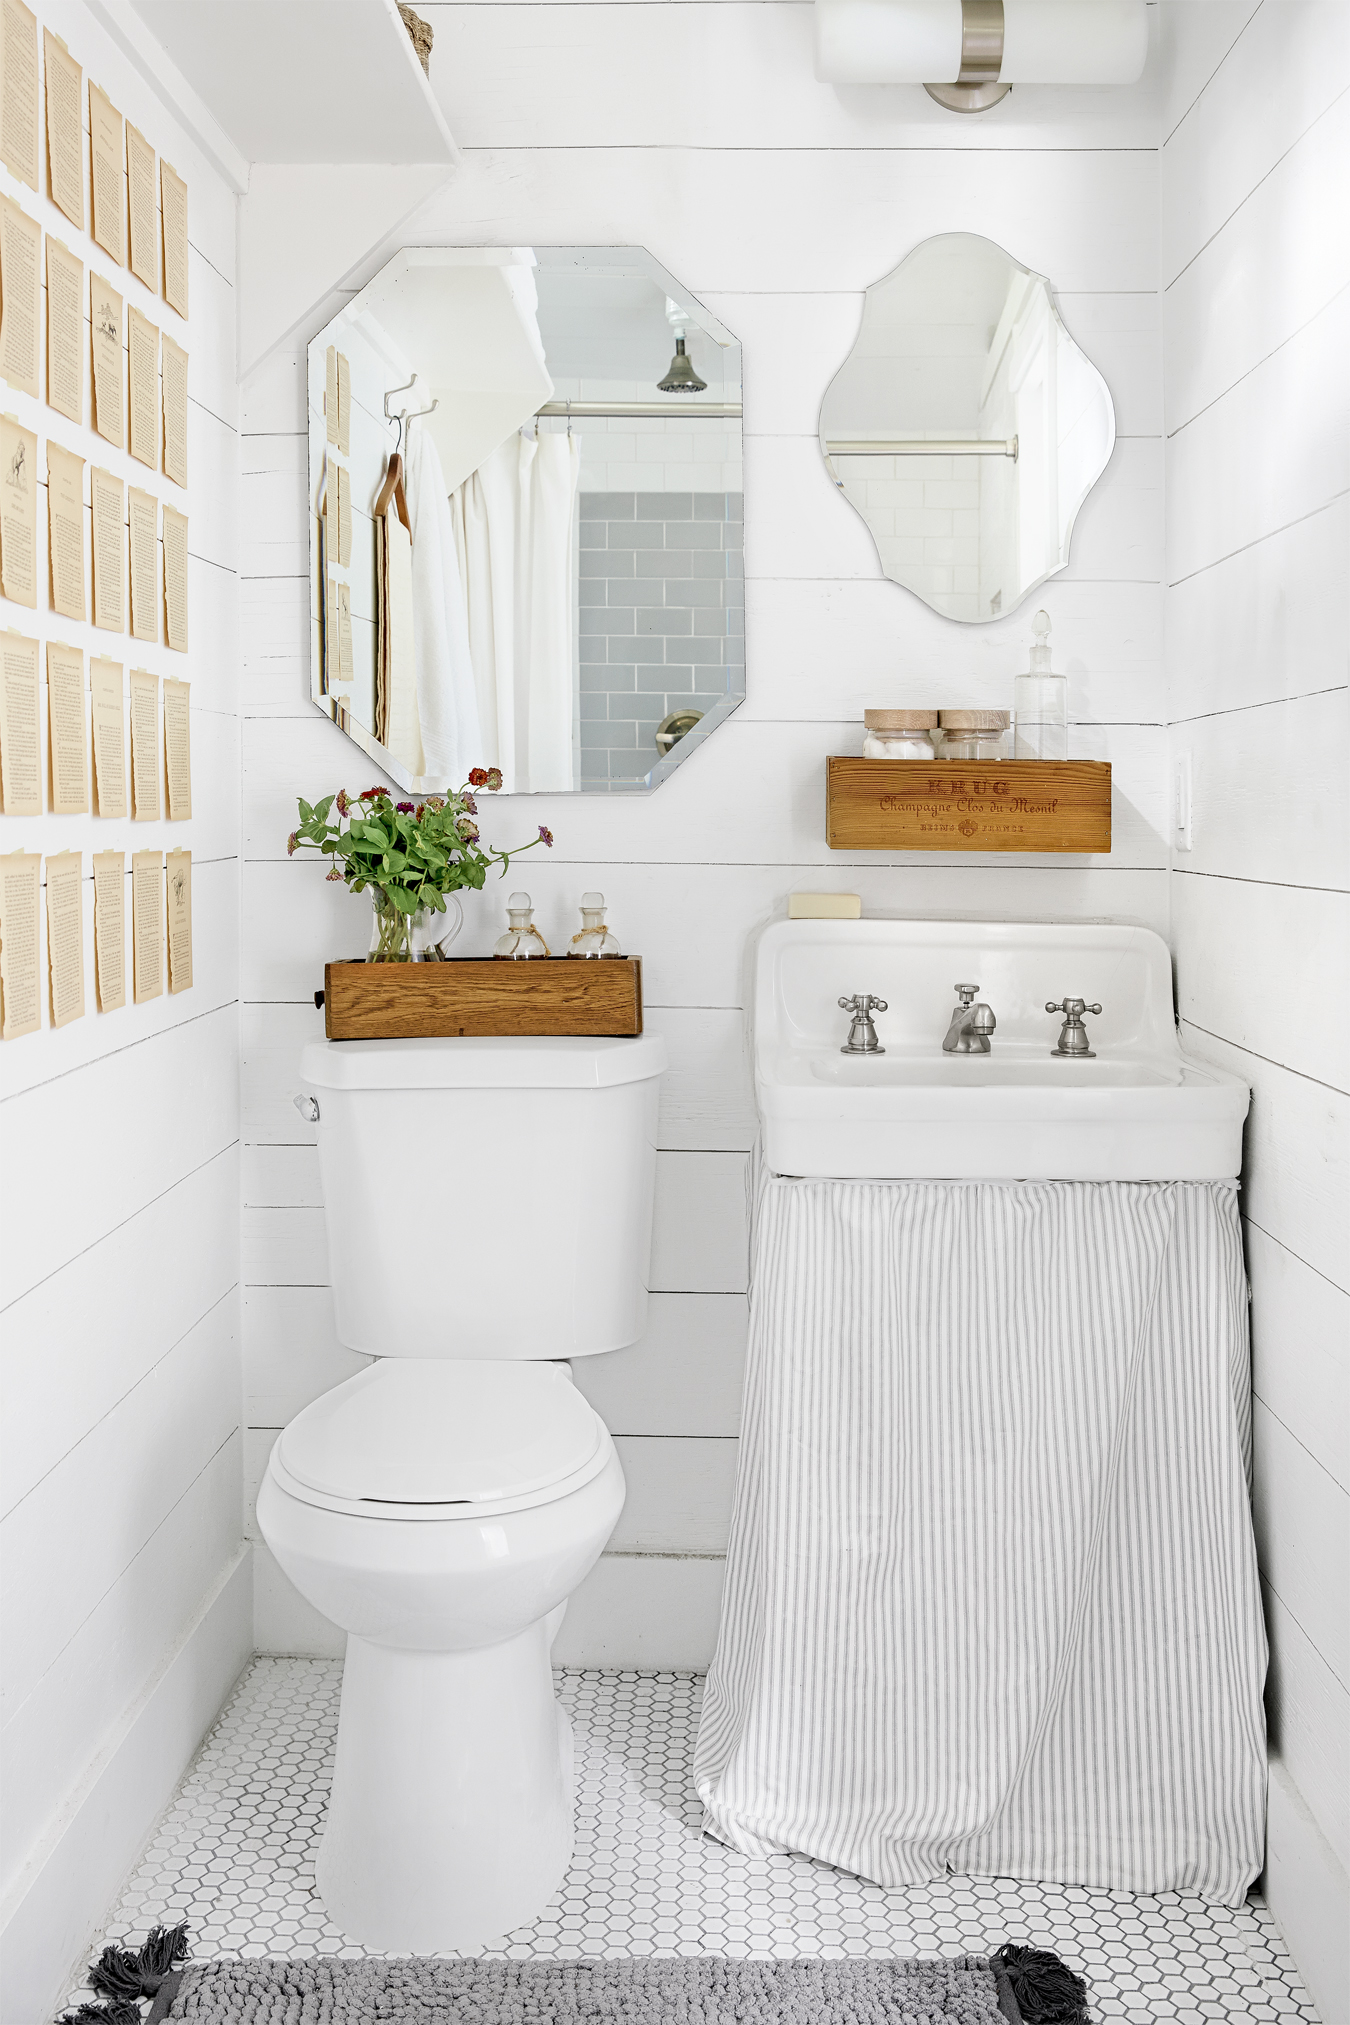 27 White Bathroom Ideas - Decorating with White for Bathrooms